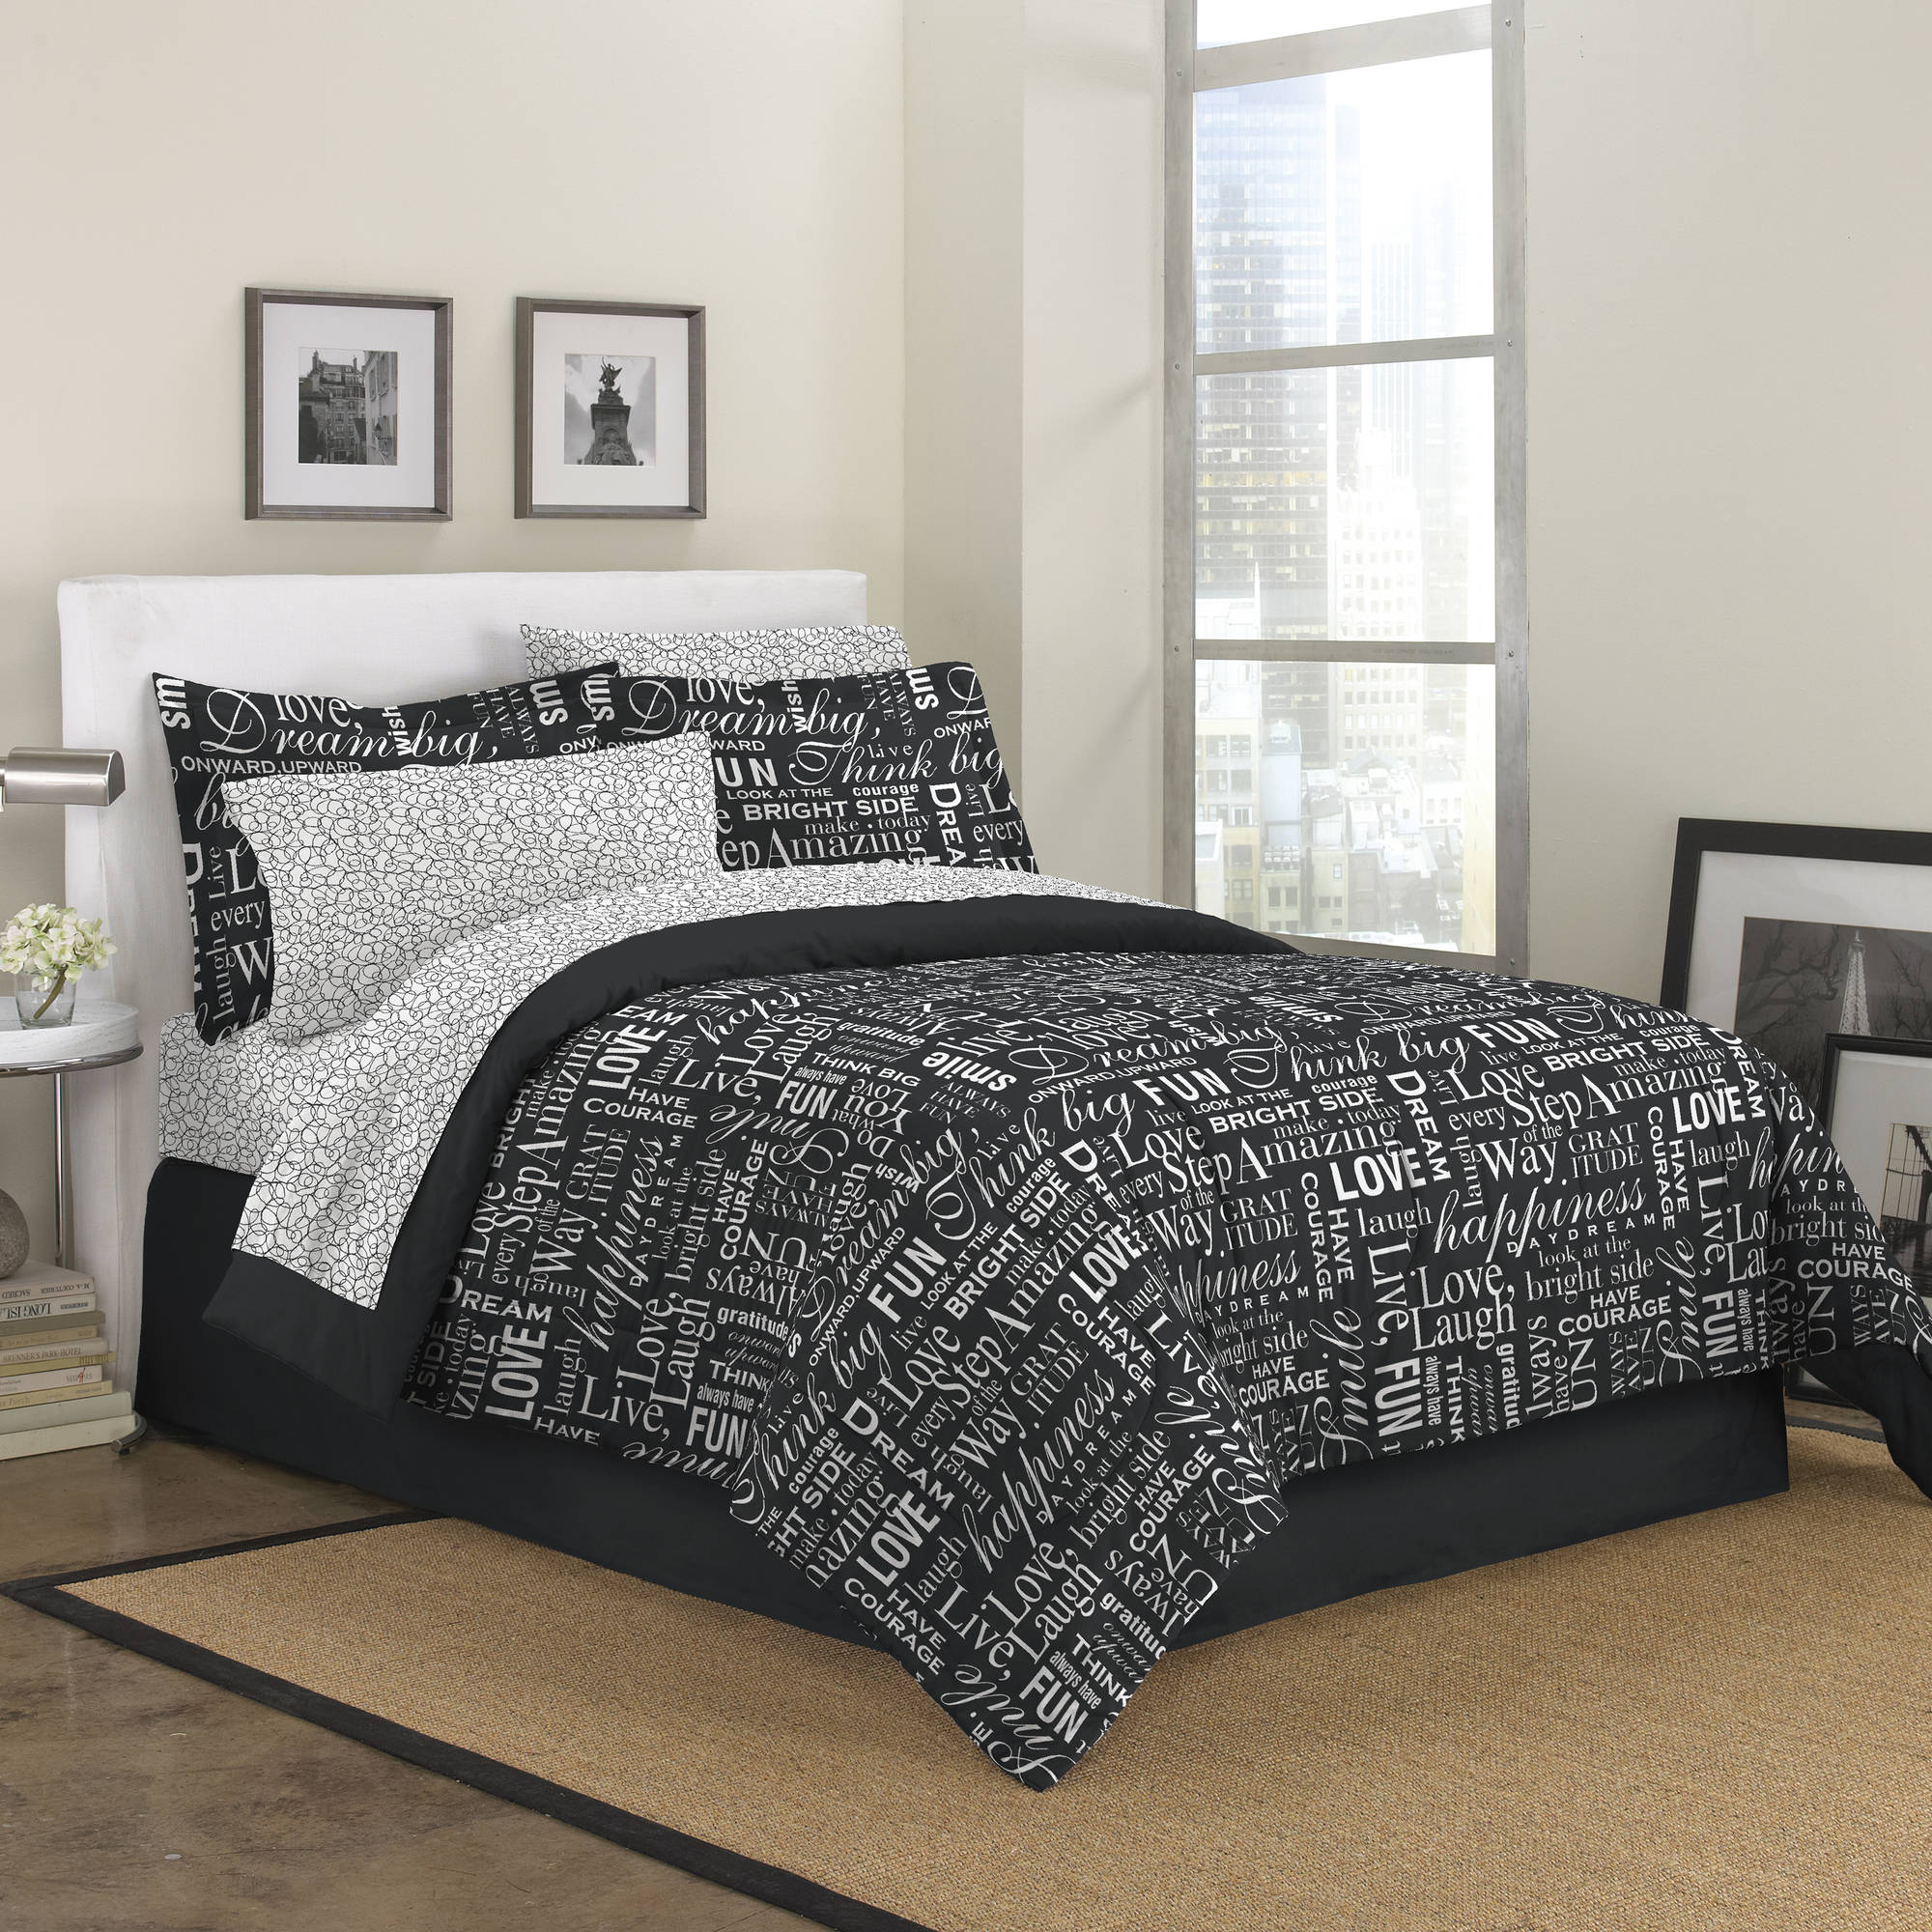 First At Home Live Love Laugh Bed In A Bag Bedding Set Black - home decor bedding stores